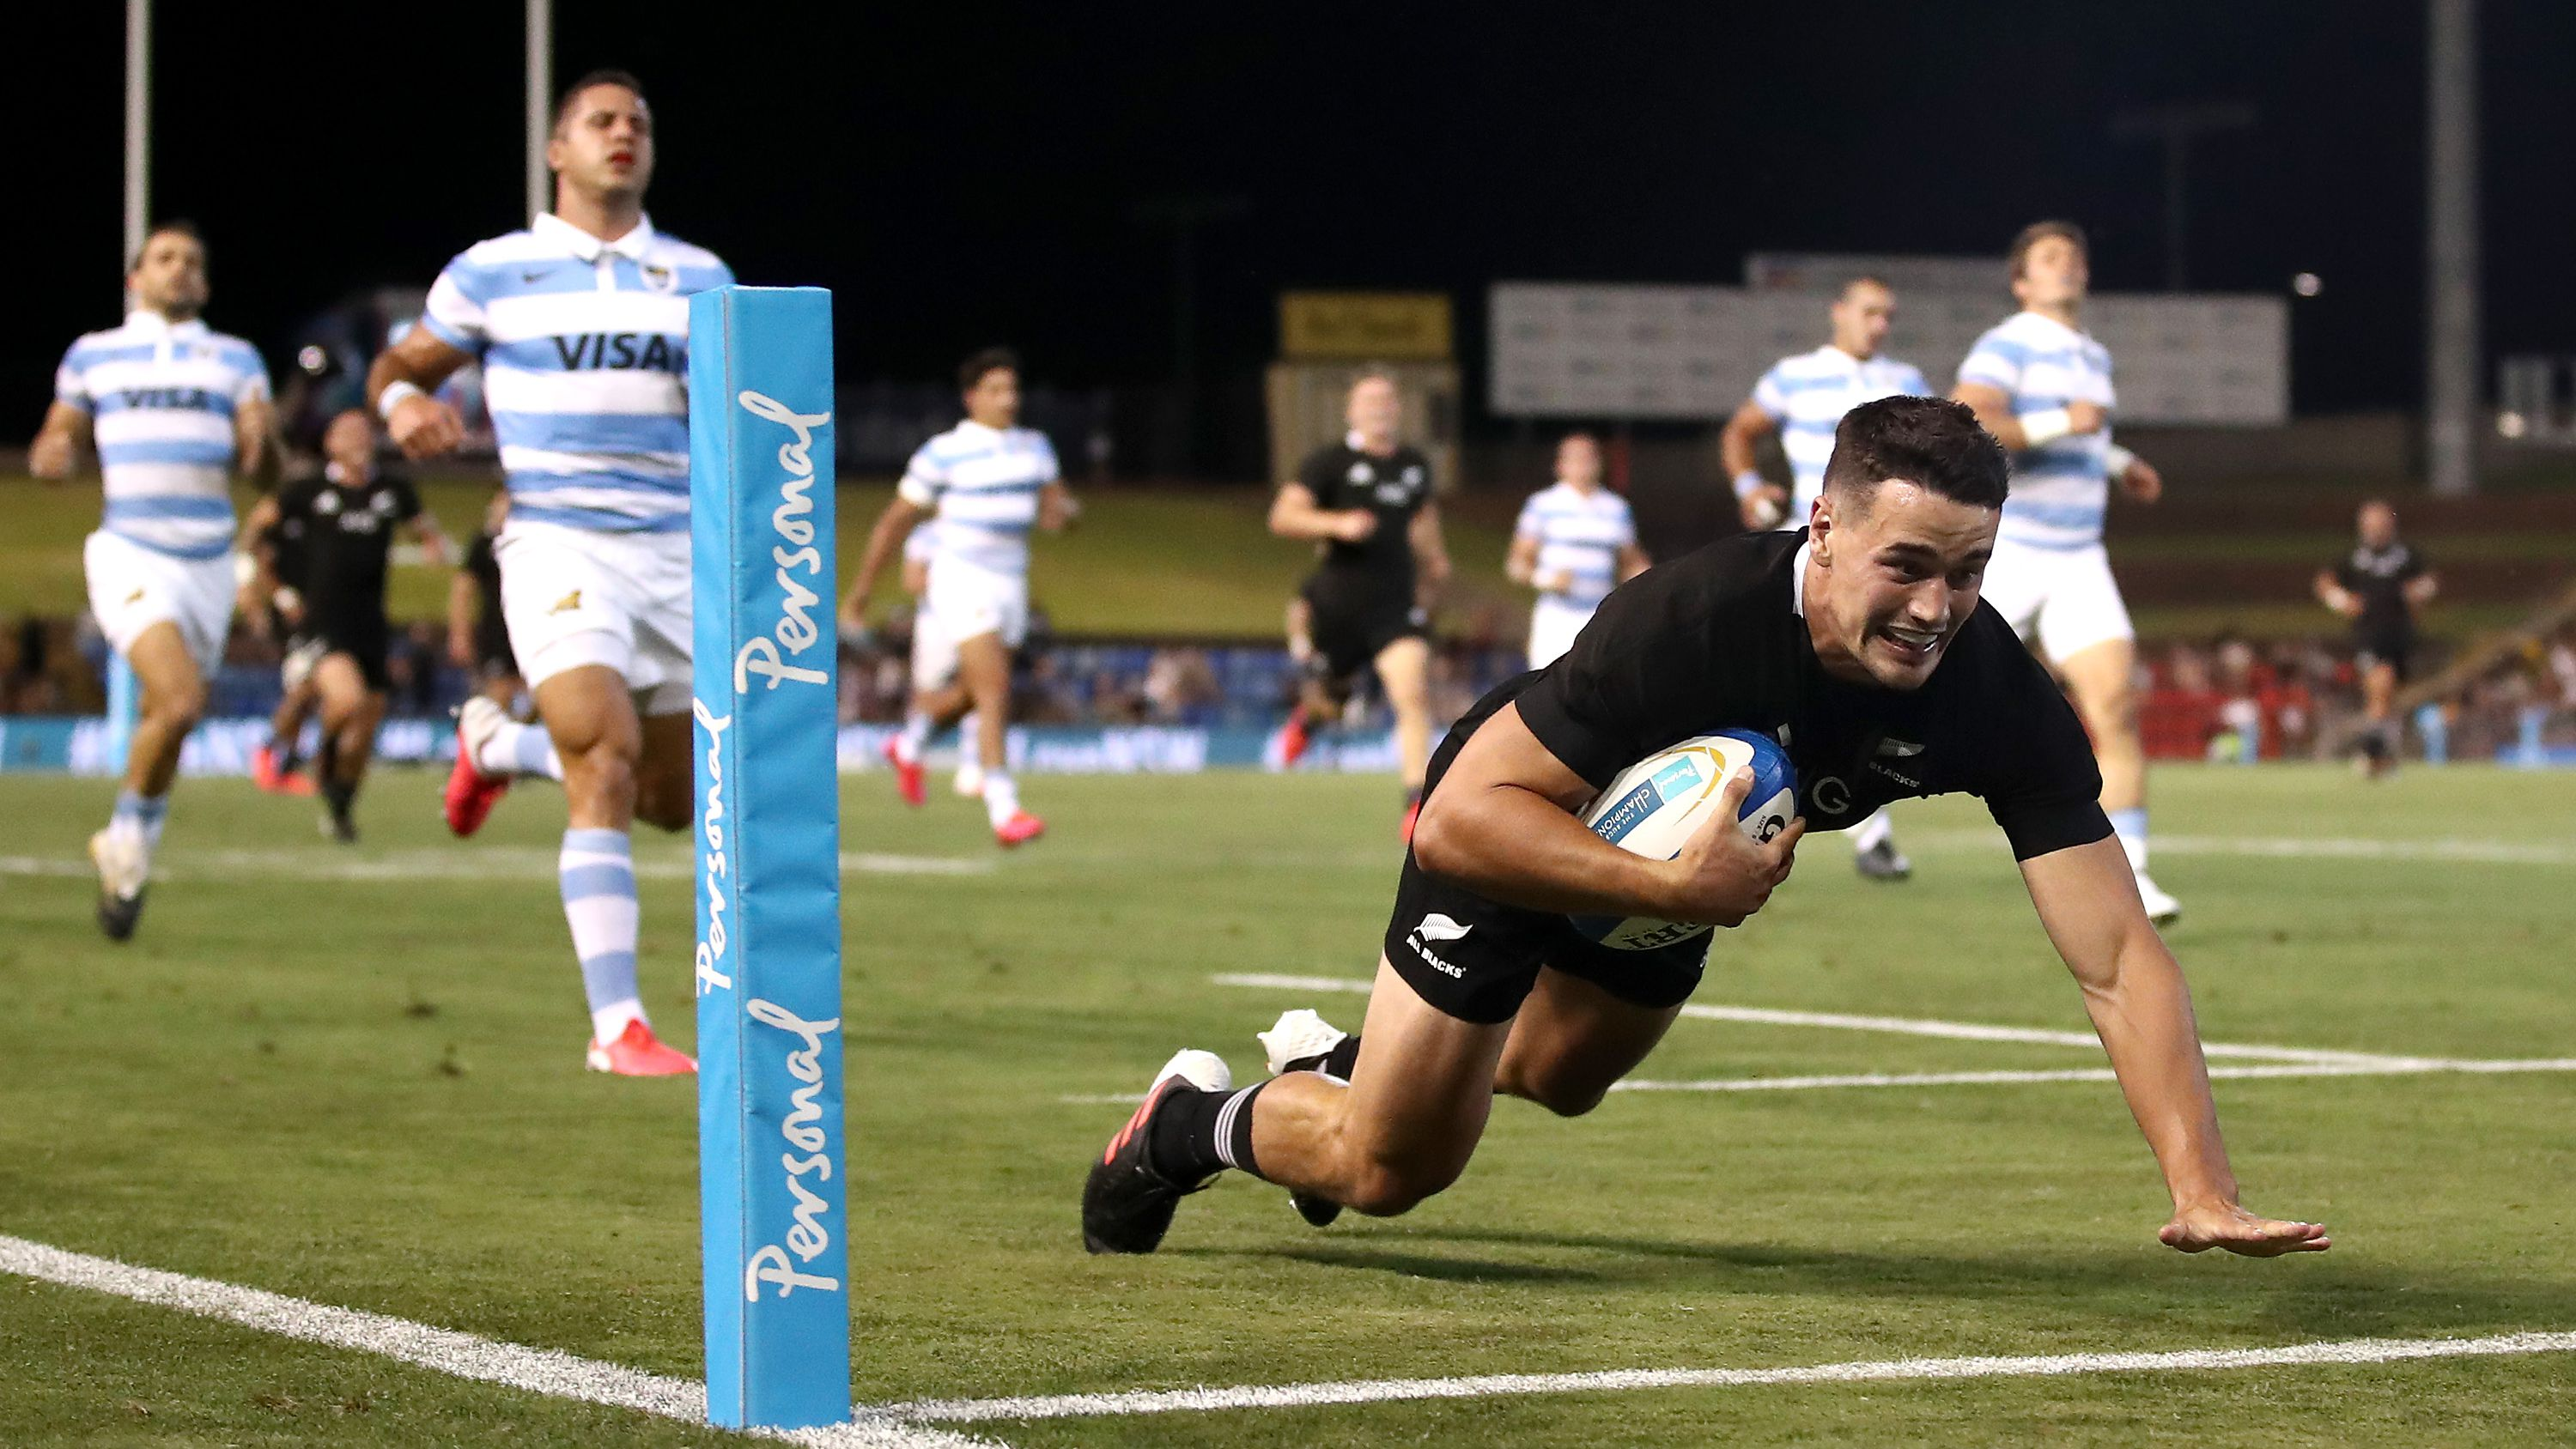 Will Jordan of the All Blacks makes a break to score a try.